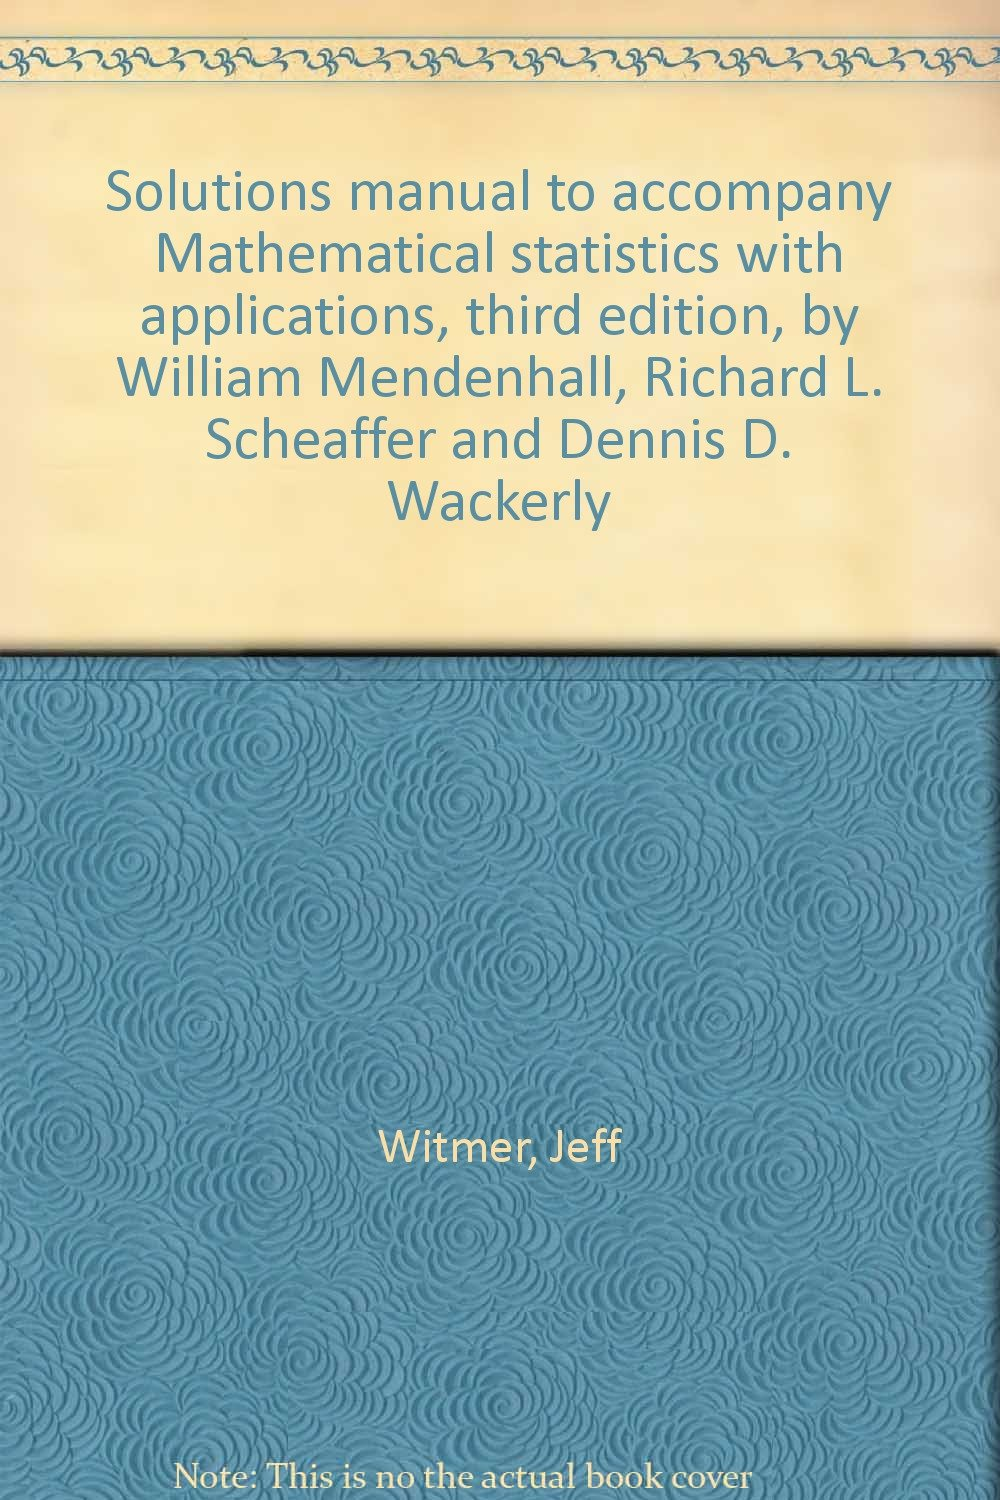 Solutions manual to accompany Mathematical statistics with applications,  third edition, by William Mendenhall, Richard L. Scheaffer and Dennis D.  Wackerly: ...